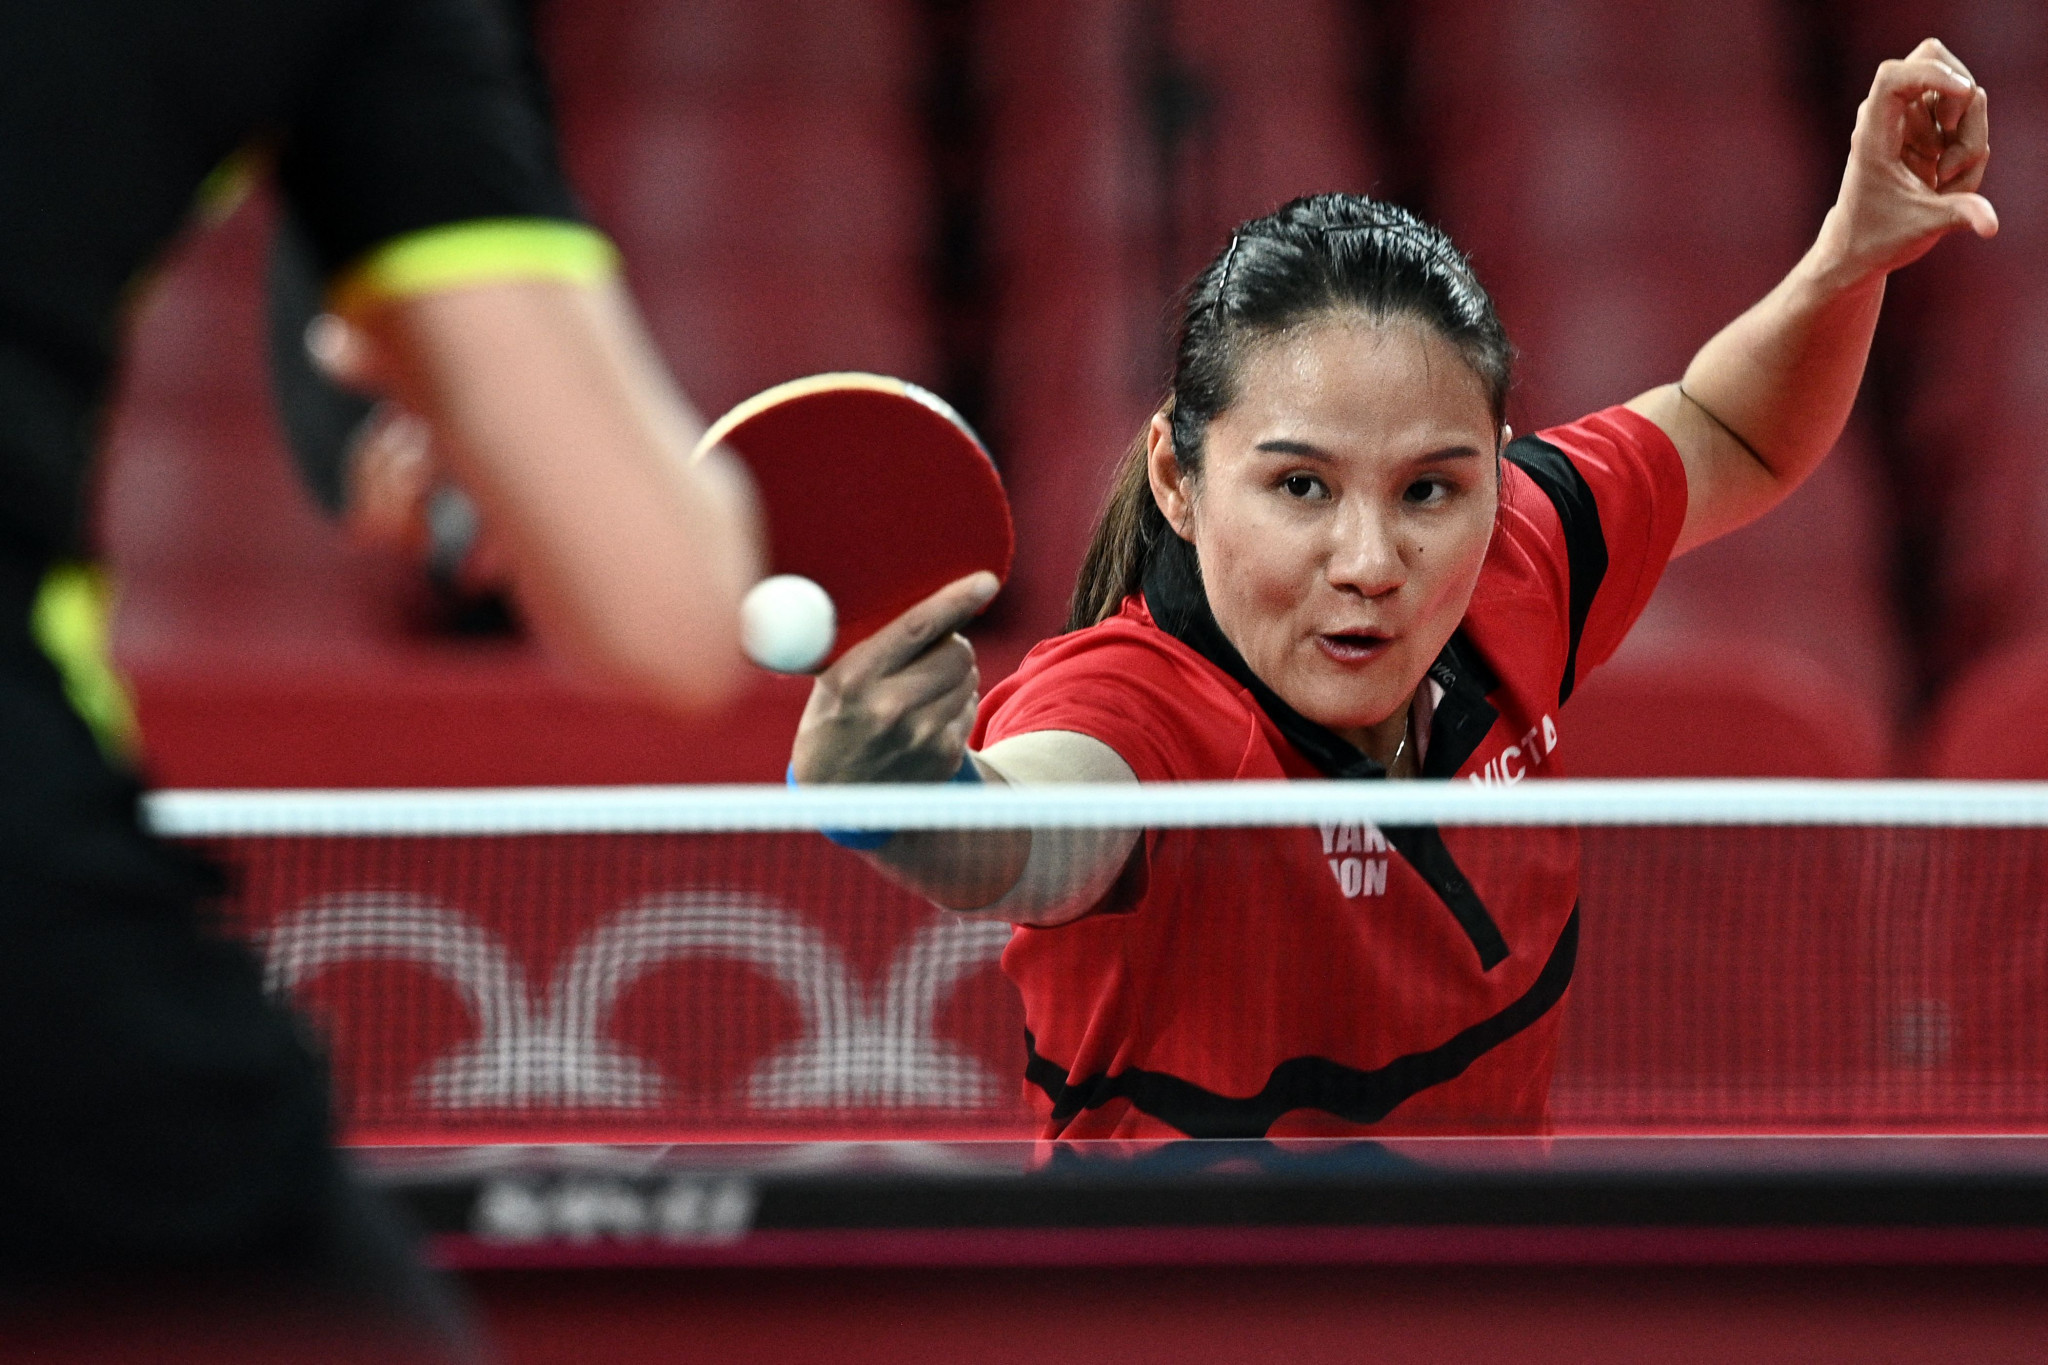 Finalists confirmed at WTT Contender Budapest on day of upsets in men's singles event